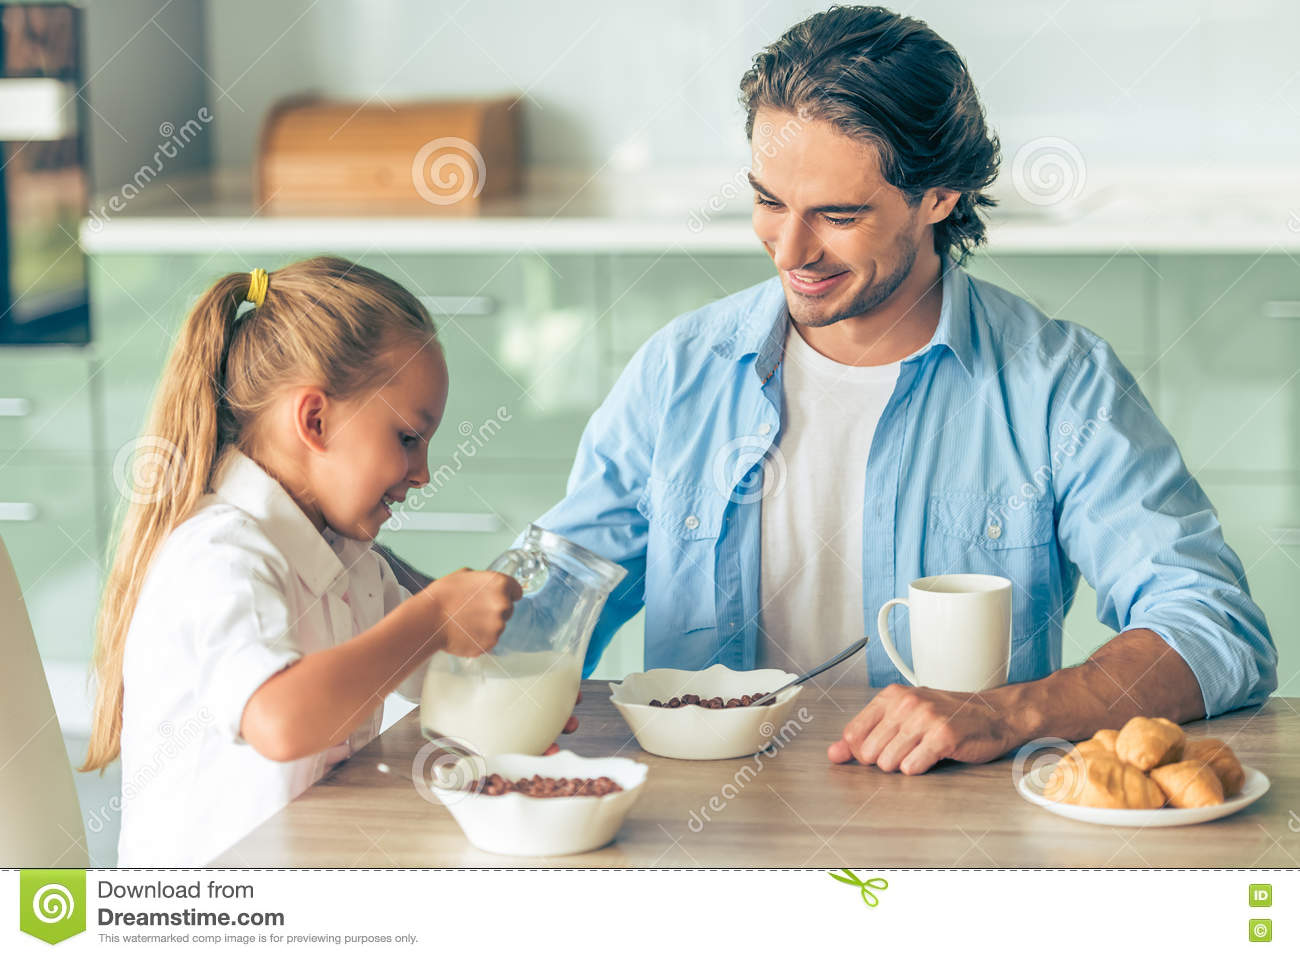 Father and daughter stock photo. Image of adult, croissant - 75461826